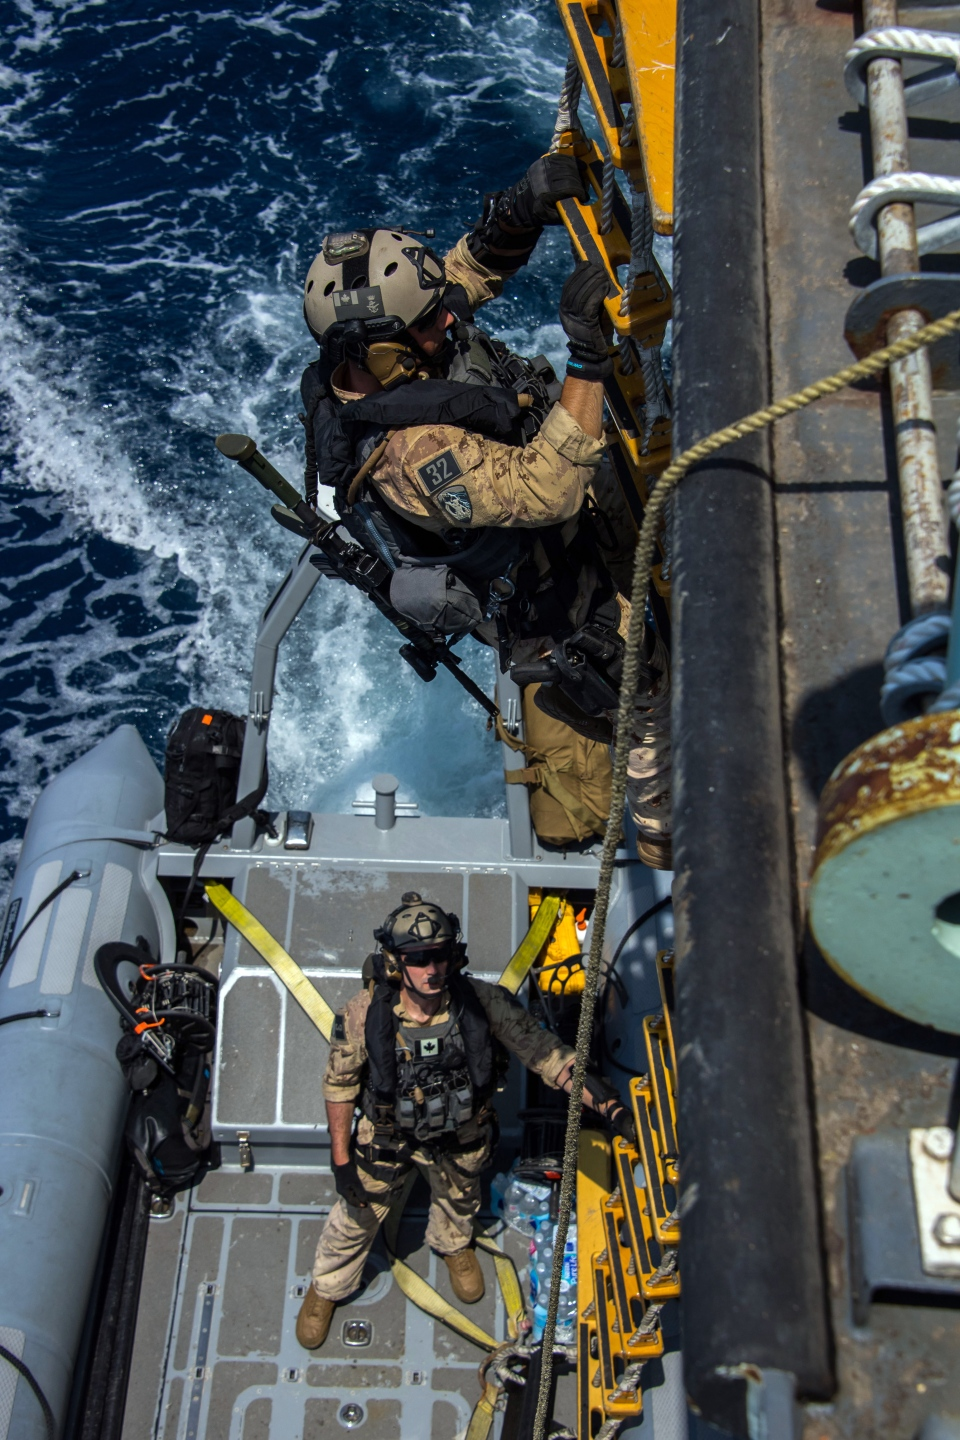 The Naval Tactical Operations Group prepares to board a suspect vessel in the Arabian Sea. (Department of National Defence)